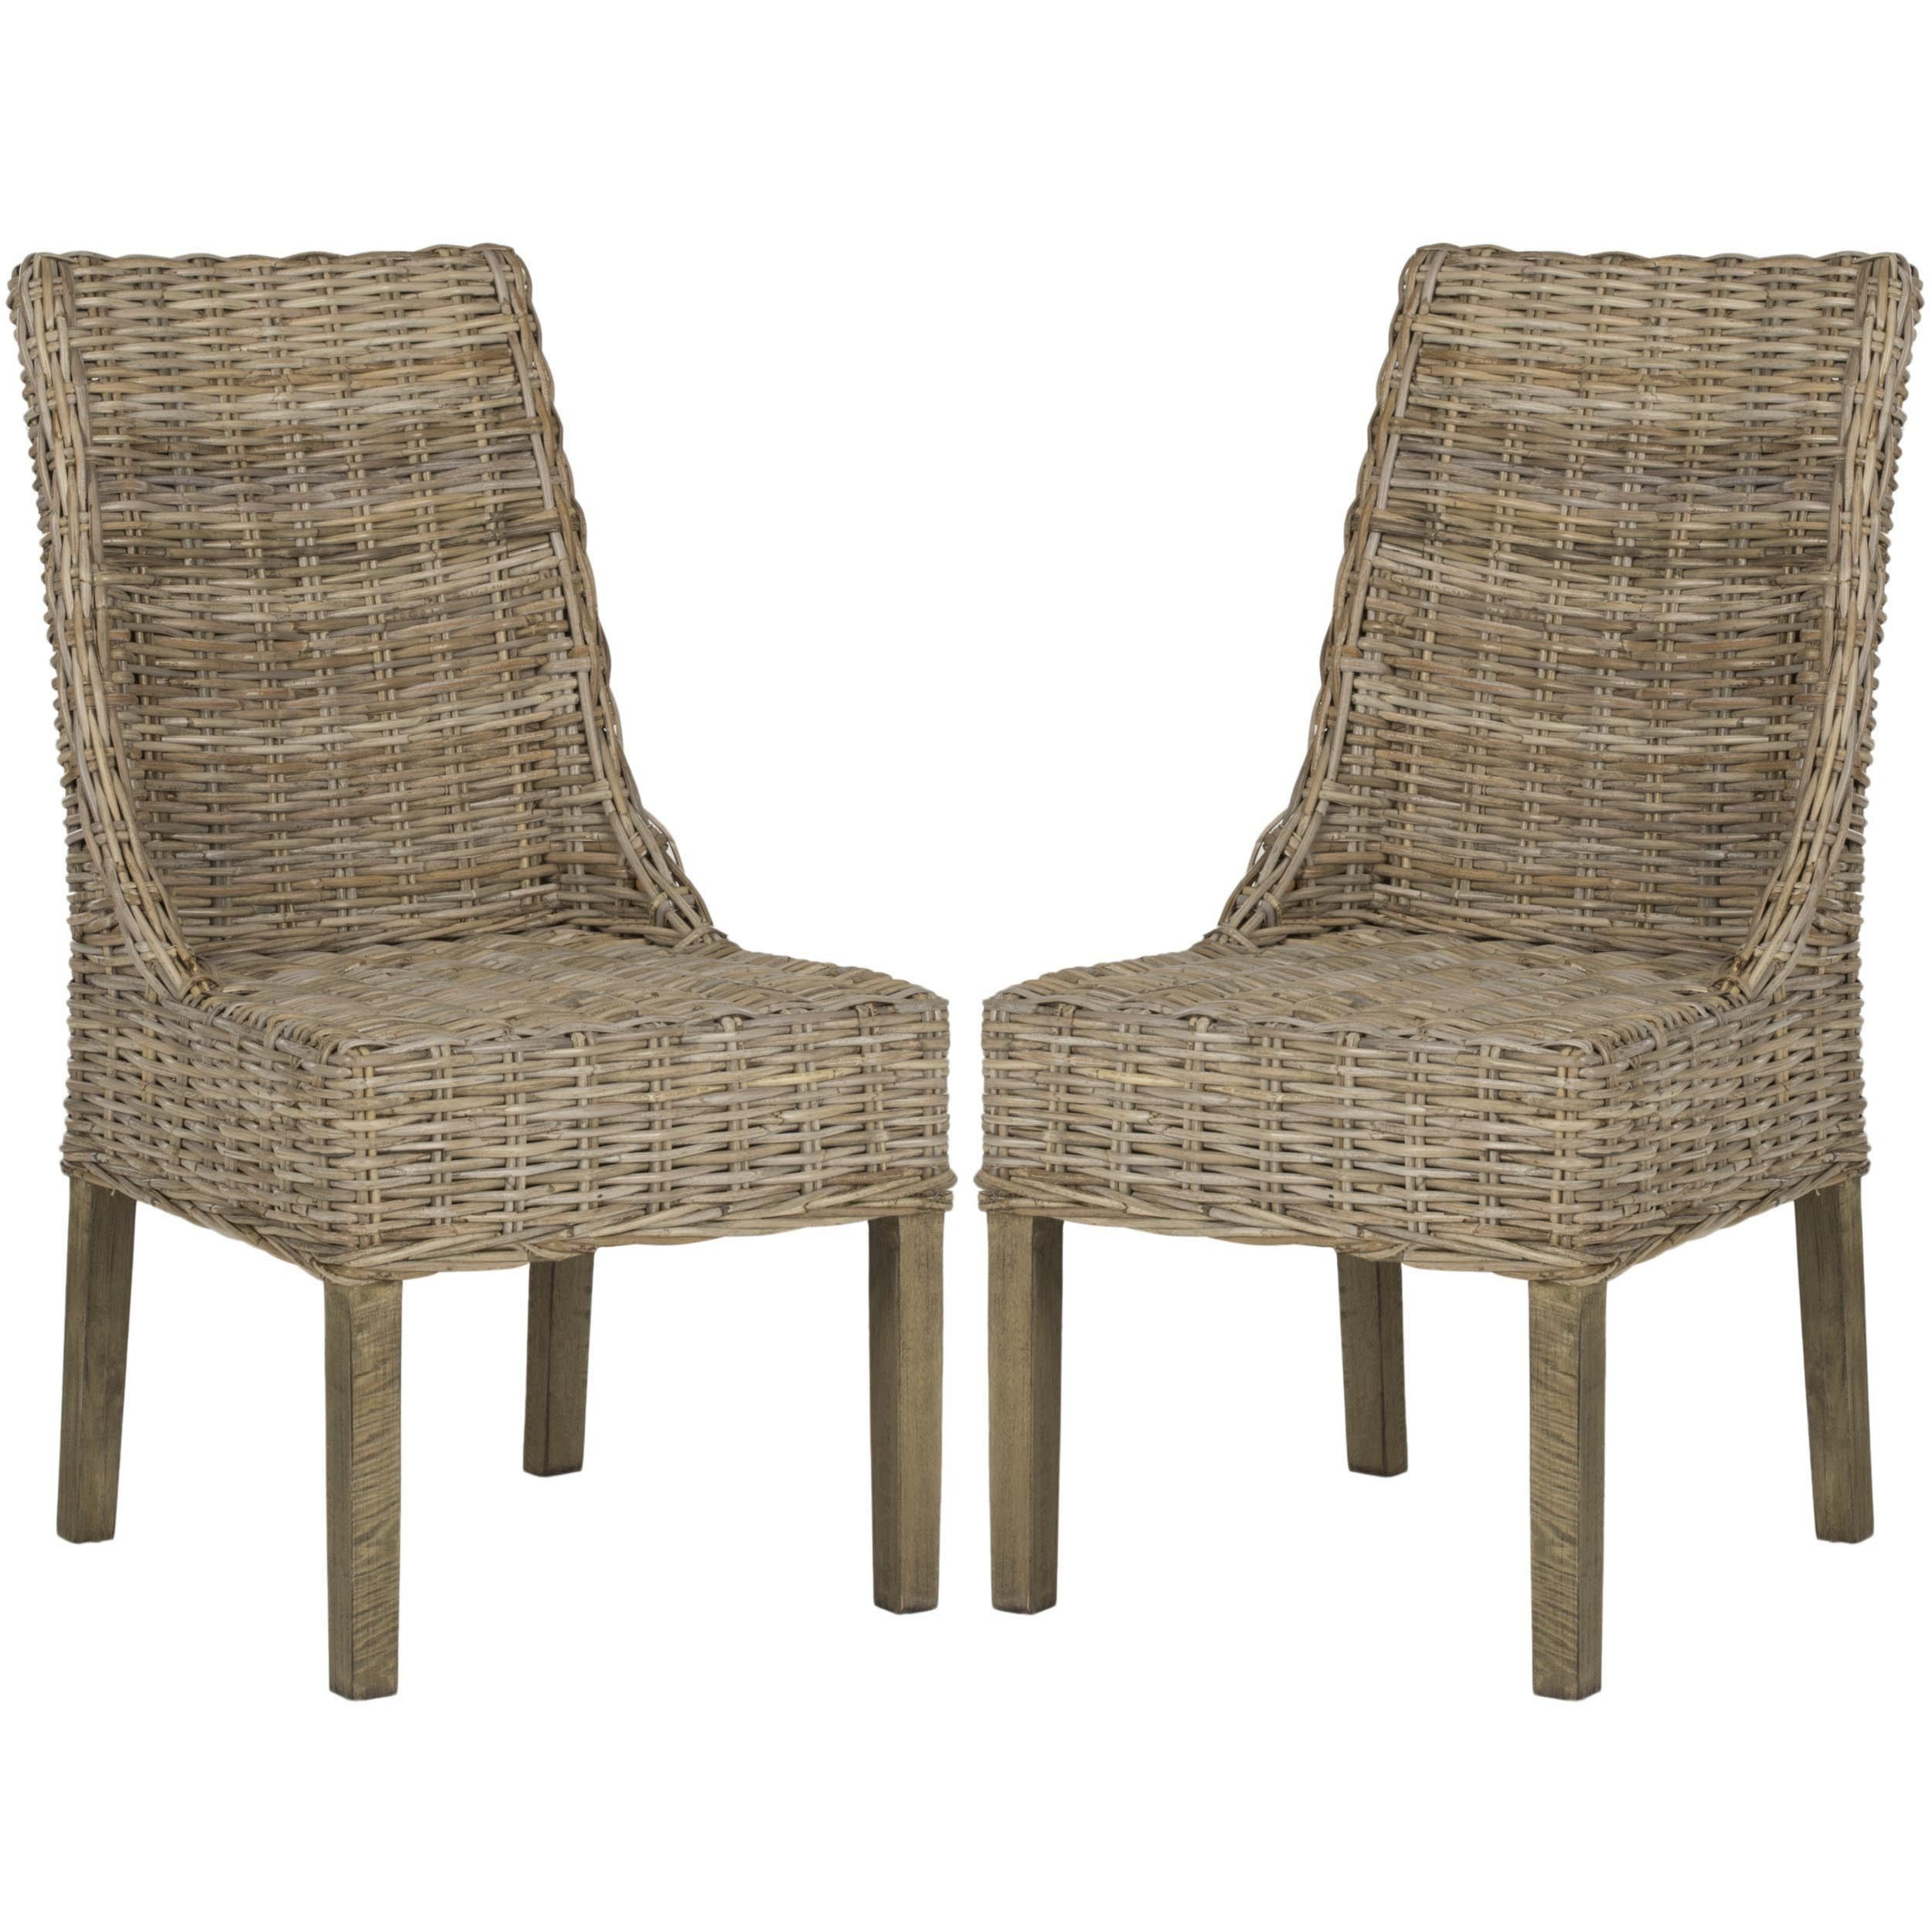 Bring A Touch Of The Islands To Life In Your Dining Room With This Pair Natural Wicker Arm Chairs These Pretty Have An Elegant Shape And